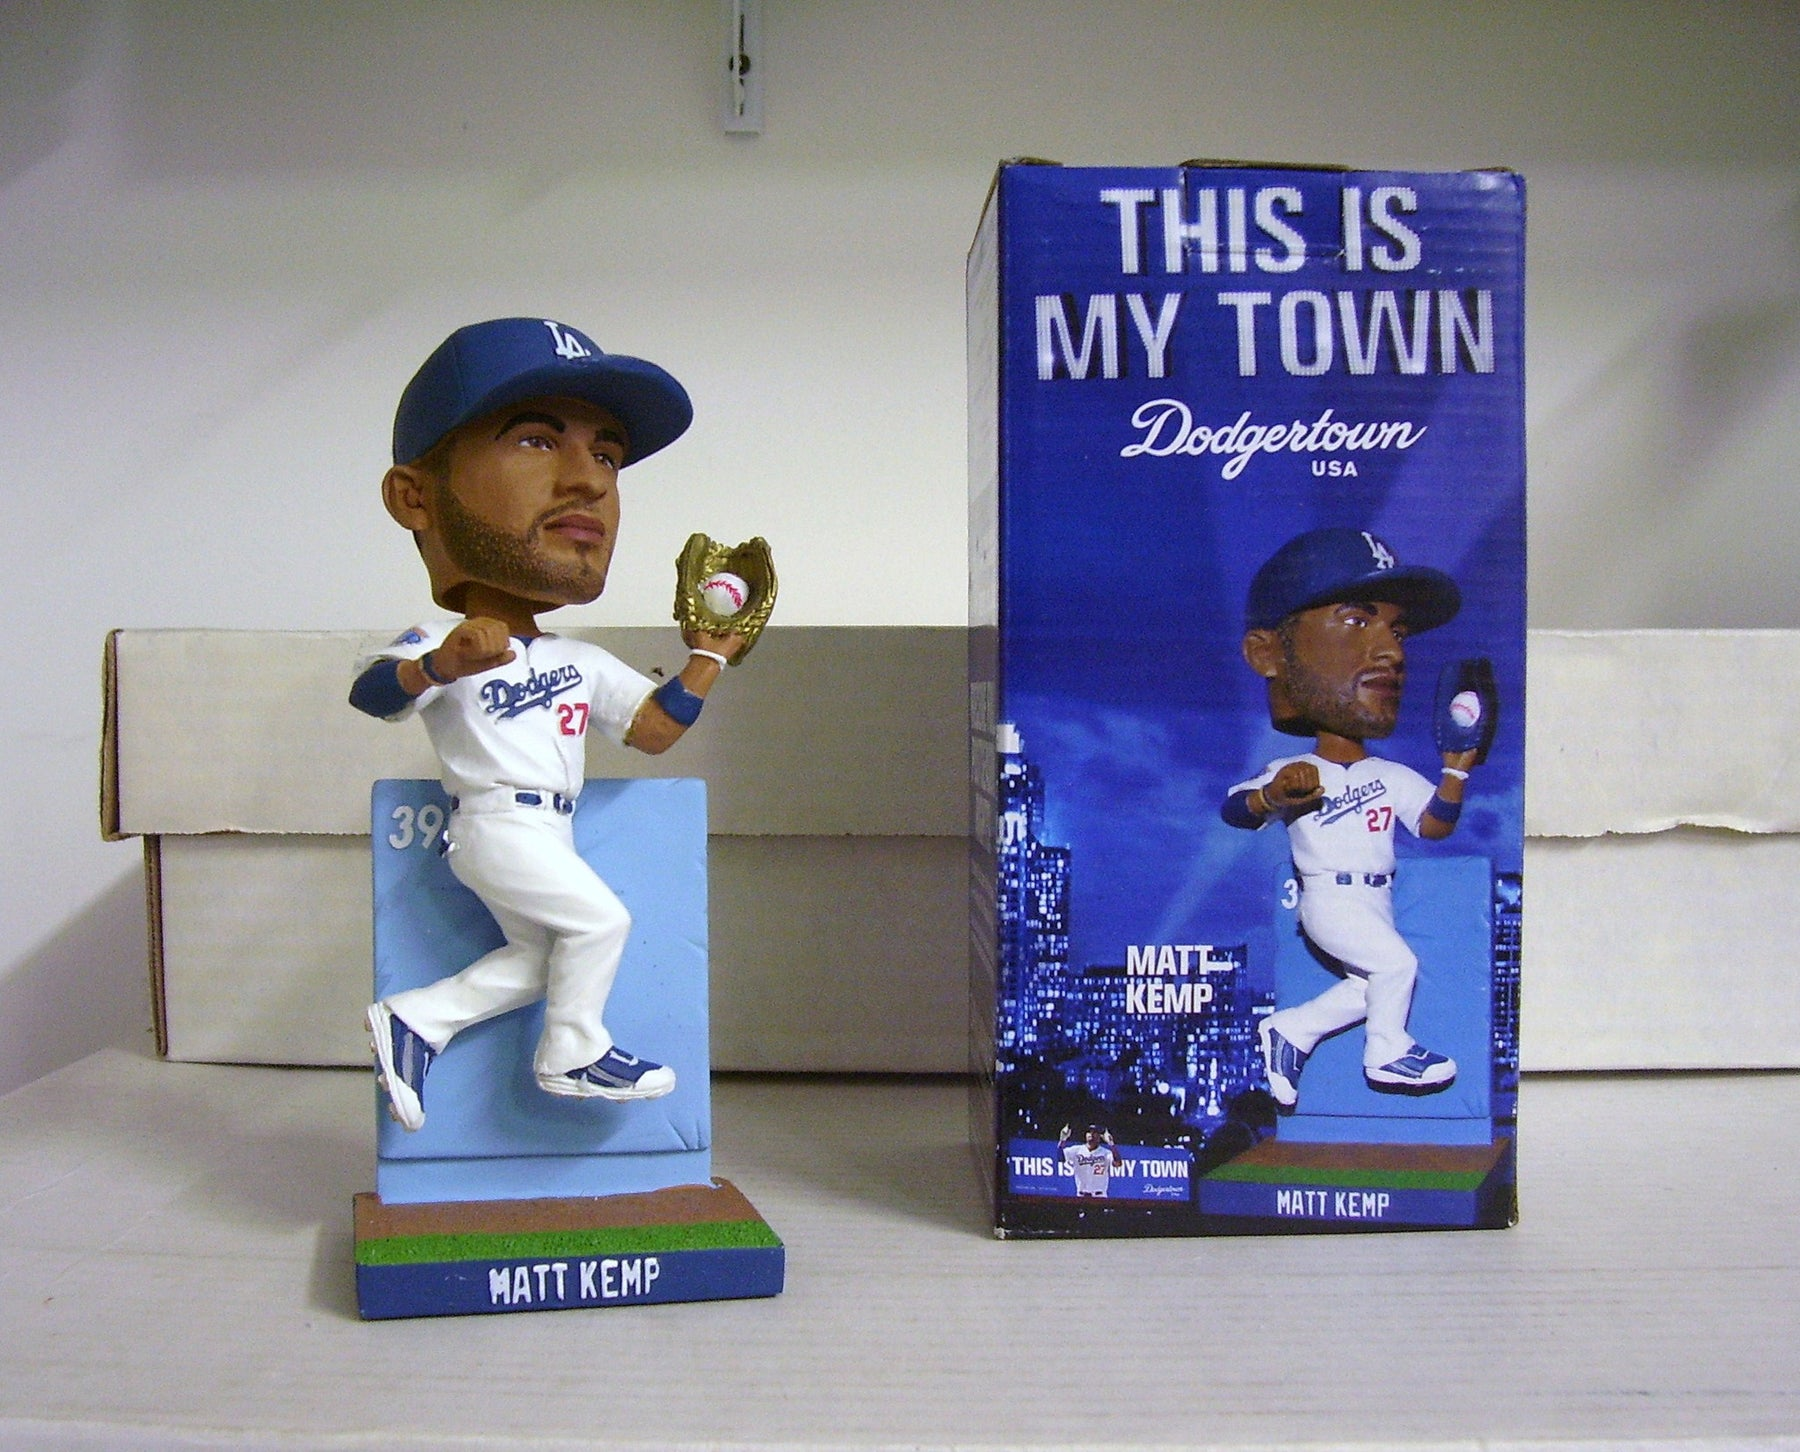 Matt Kemp GOLD GLOVE Bobblehead - BobblesGalore